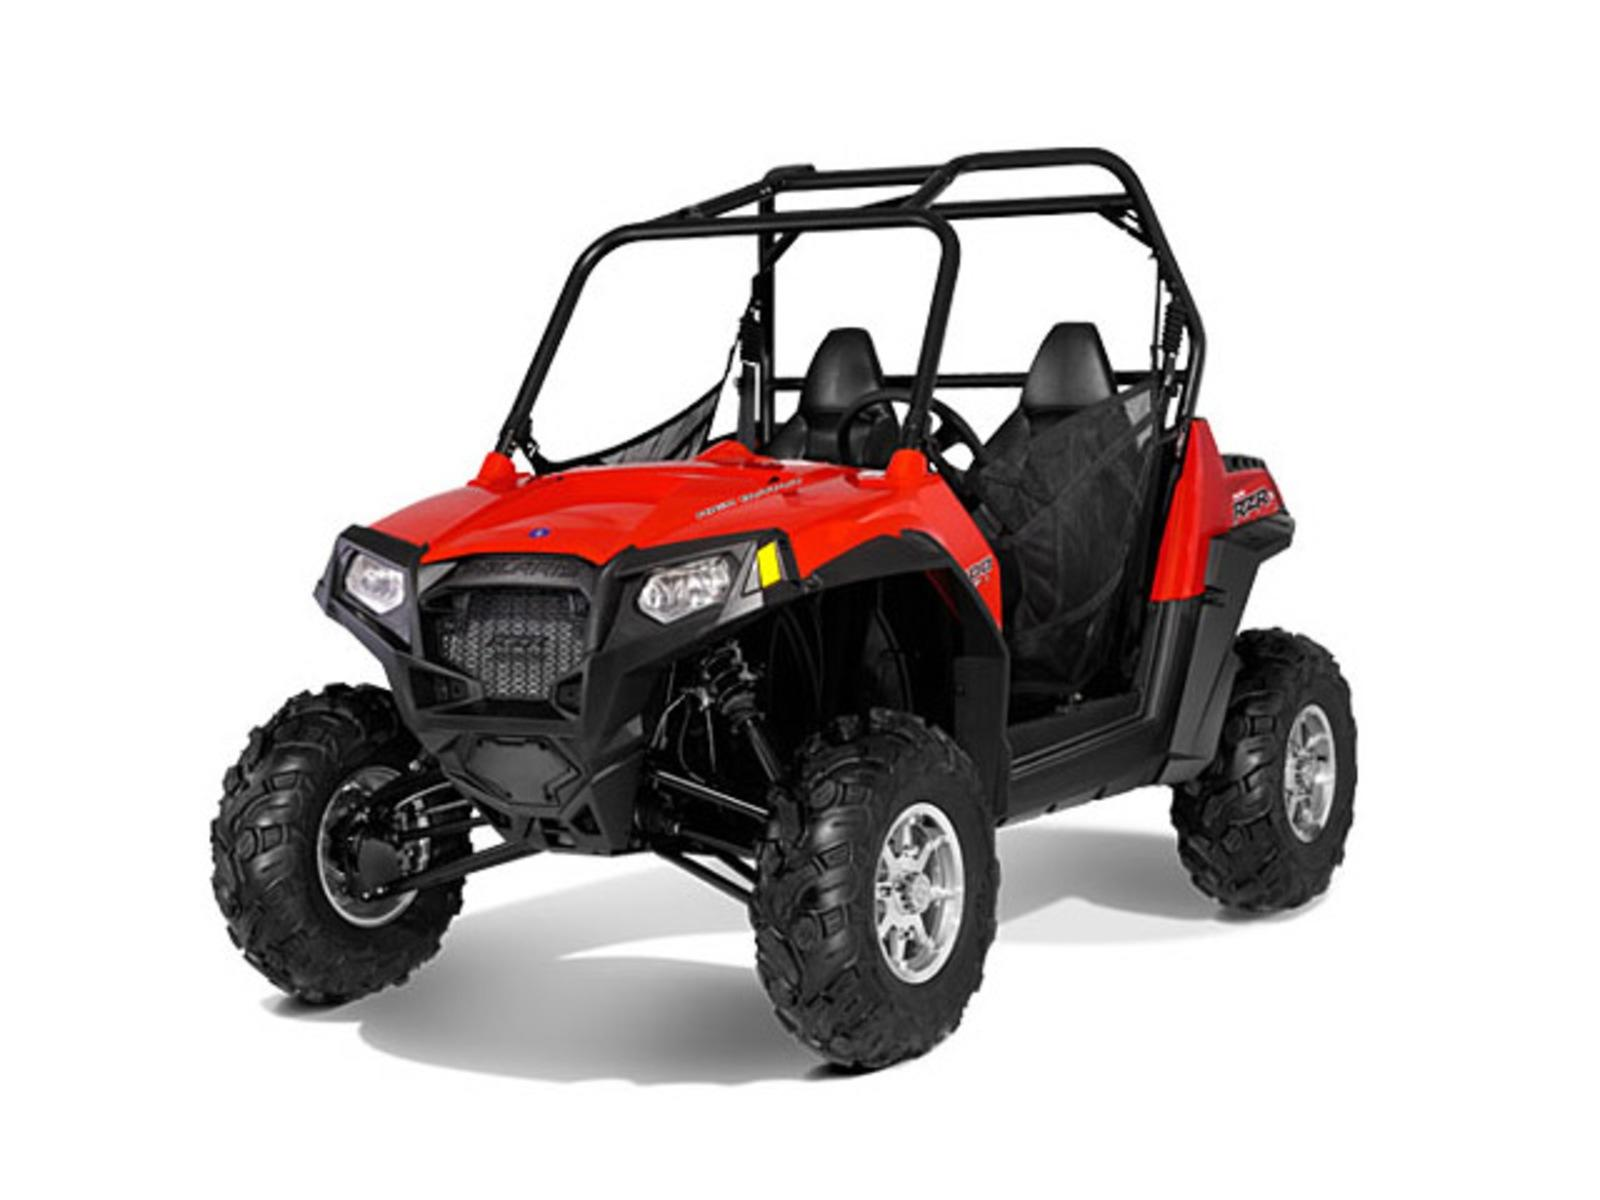 2014 polaris rzr s 800 review top speed. Black Bedroom Furniture Sets. Home Design Ideas